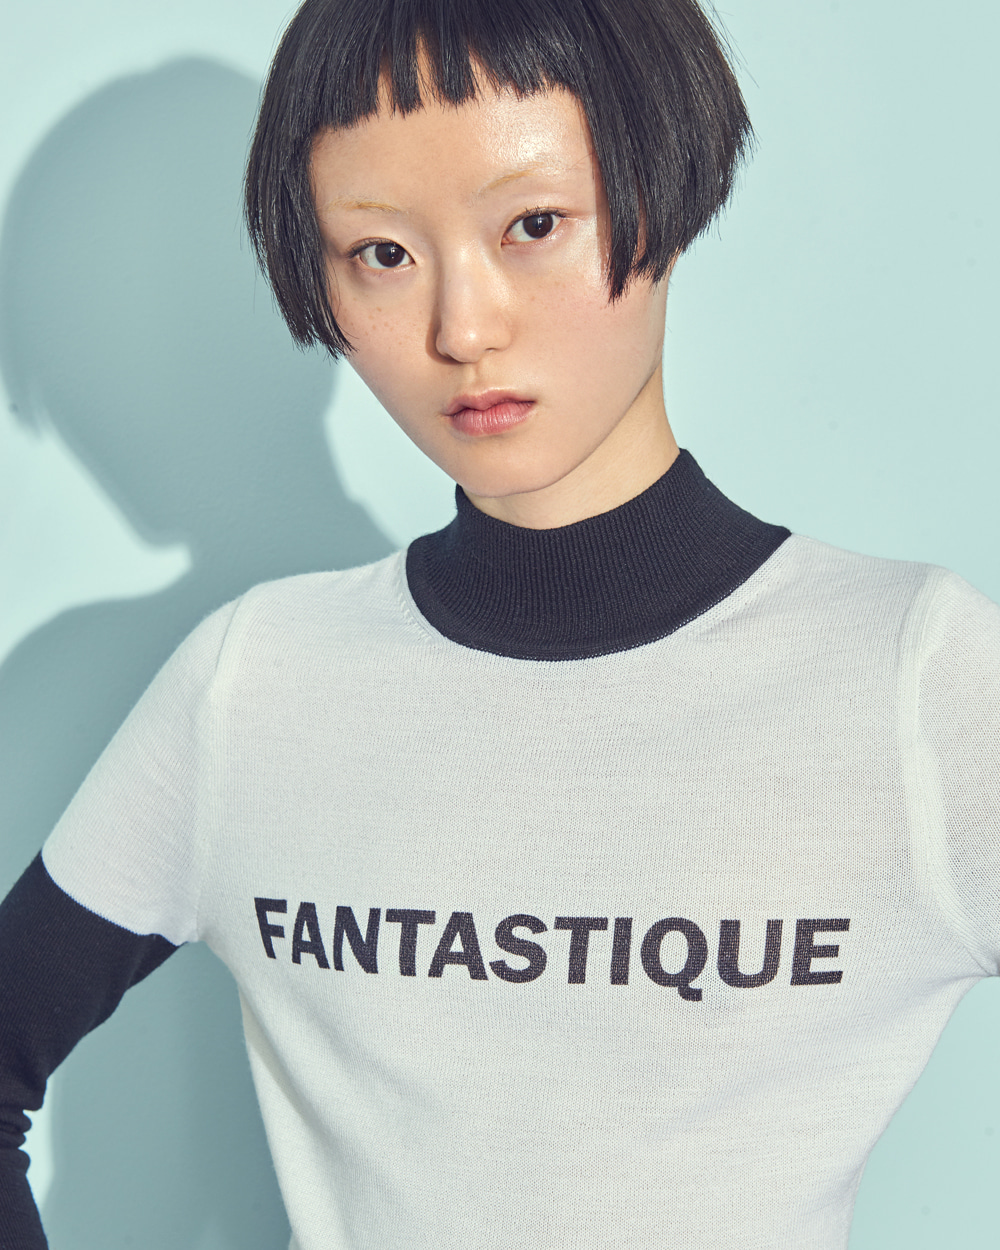 FANTASTIQUE KNIT BODY SUIT